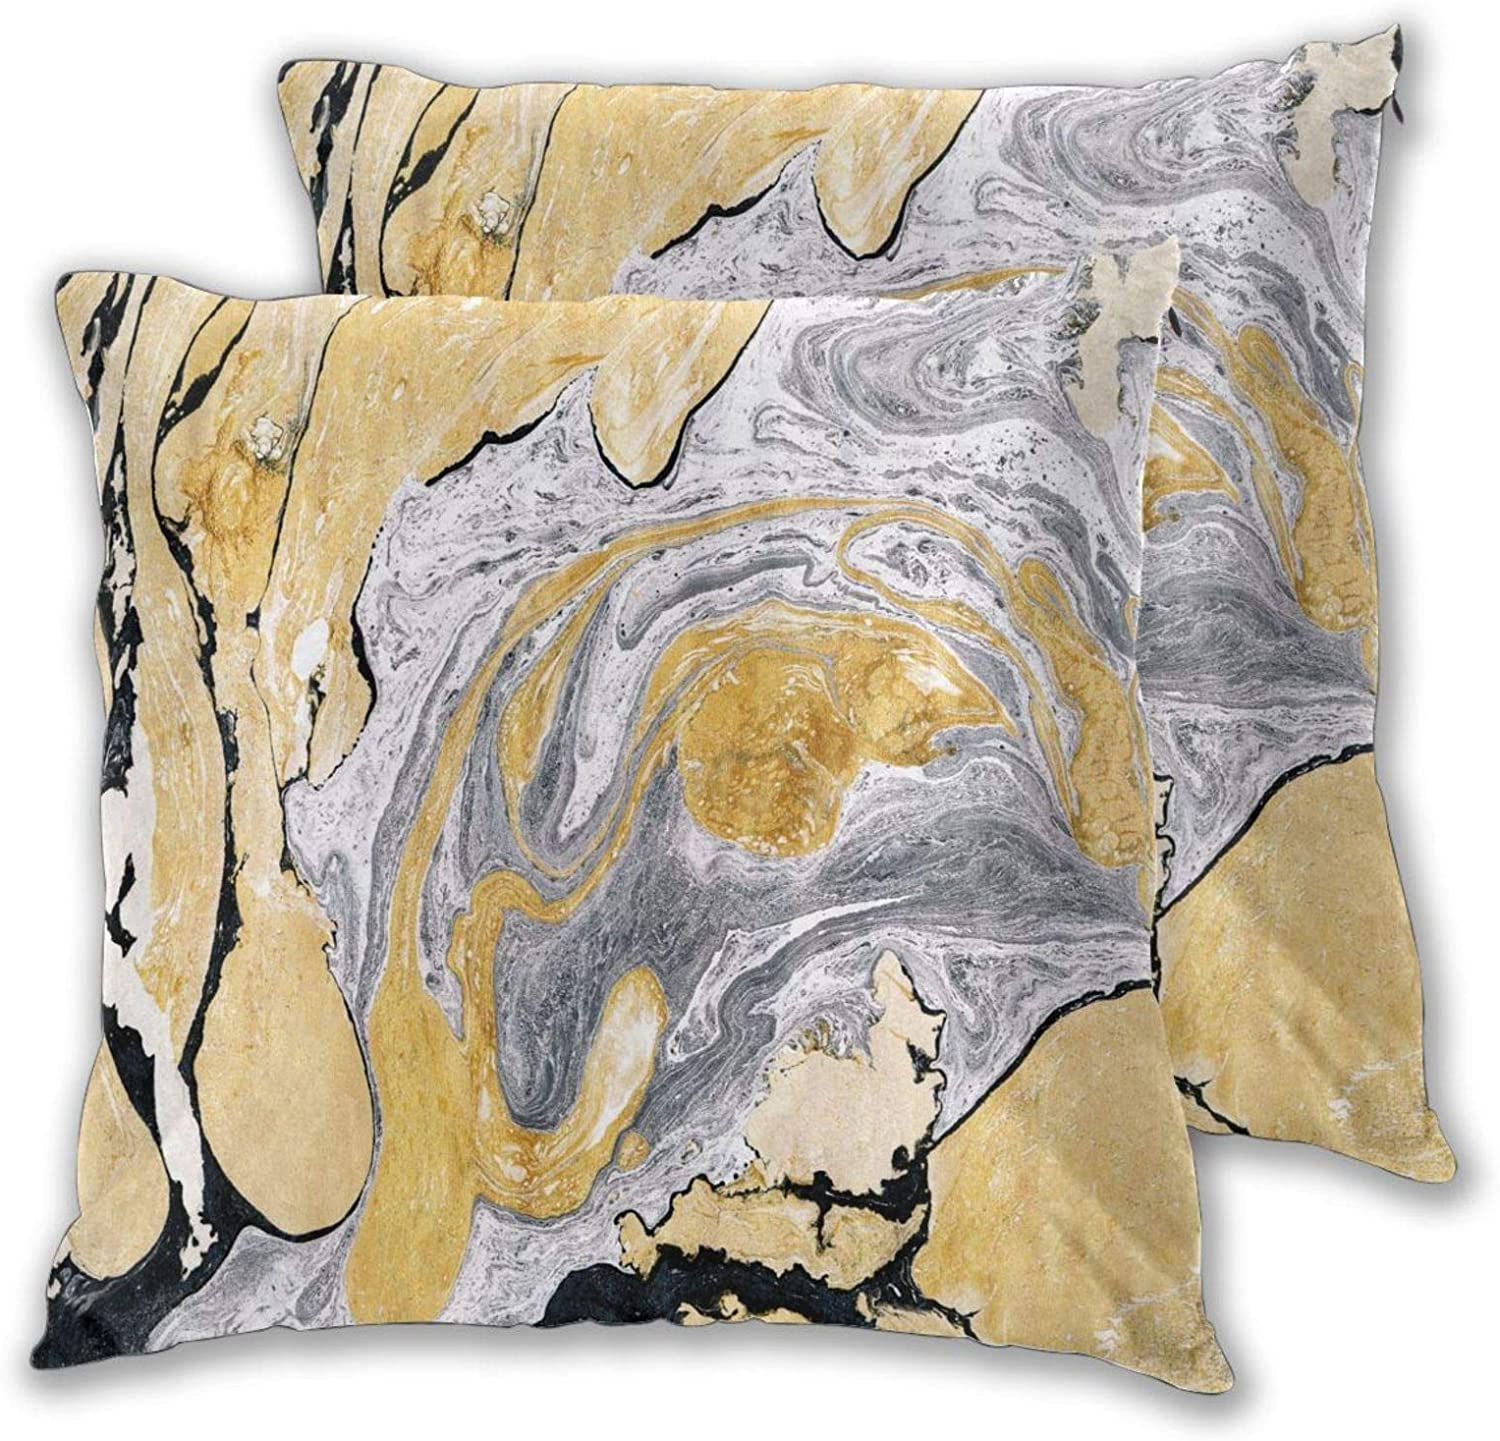 Max 77% OFF Selling and selling 2pcs 18x18 Inch Throw Pillow Golden Black-Gold Silver Covers and